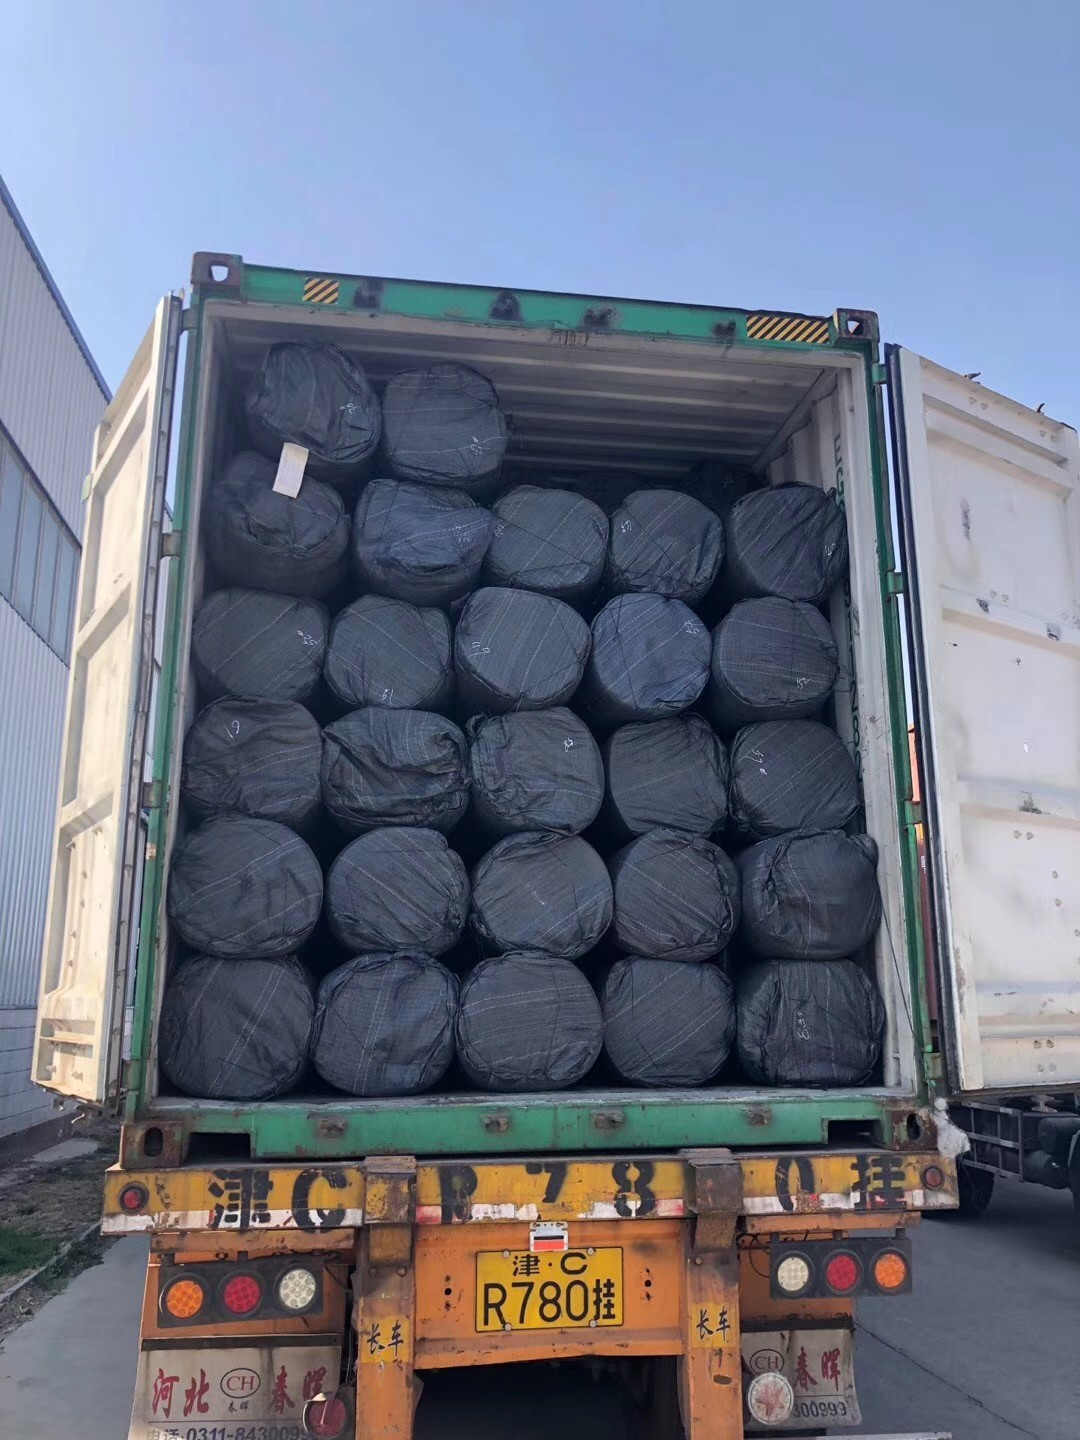 The Process Of Loading Products